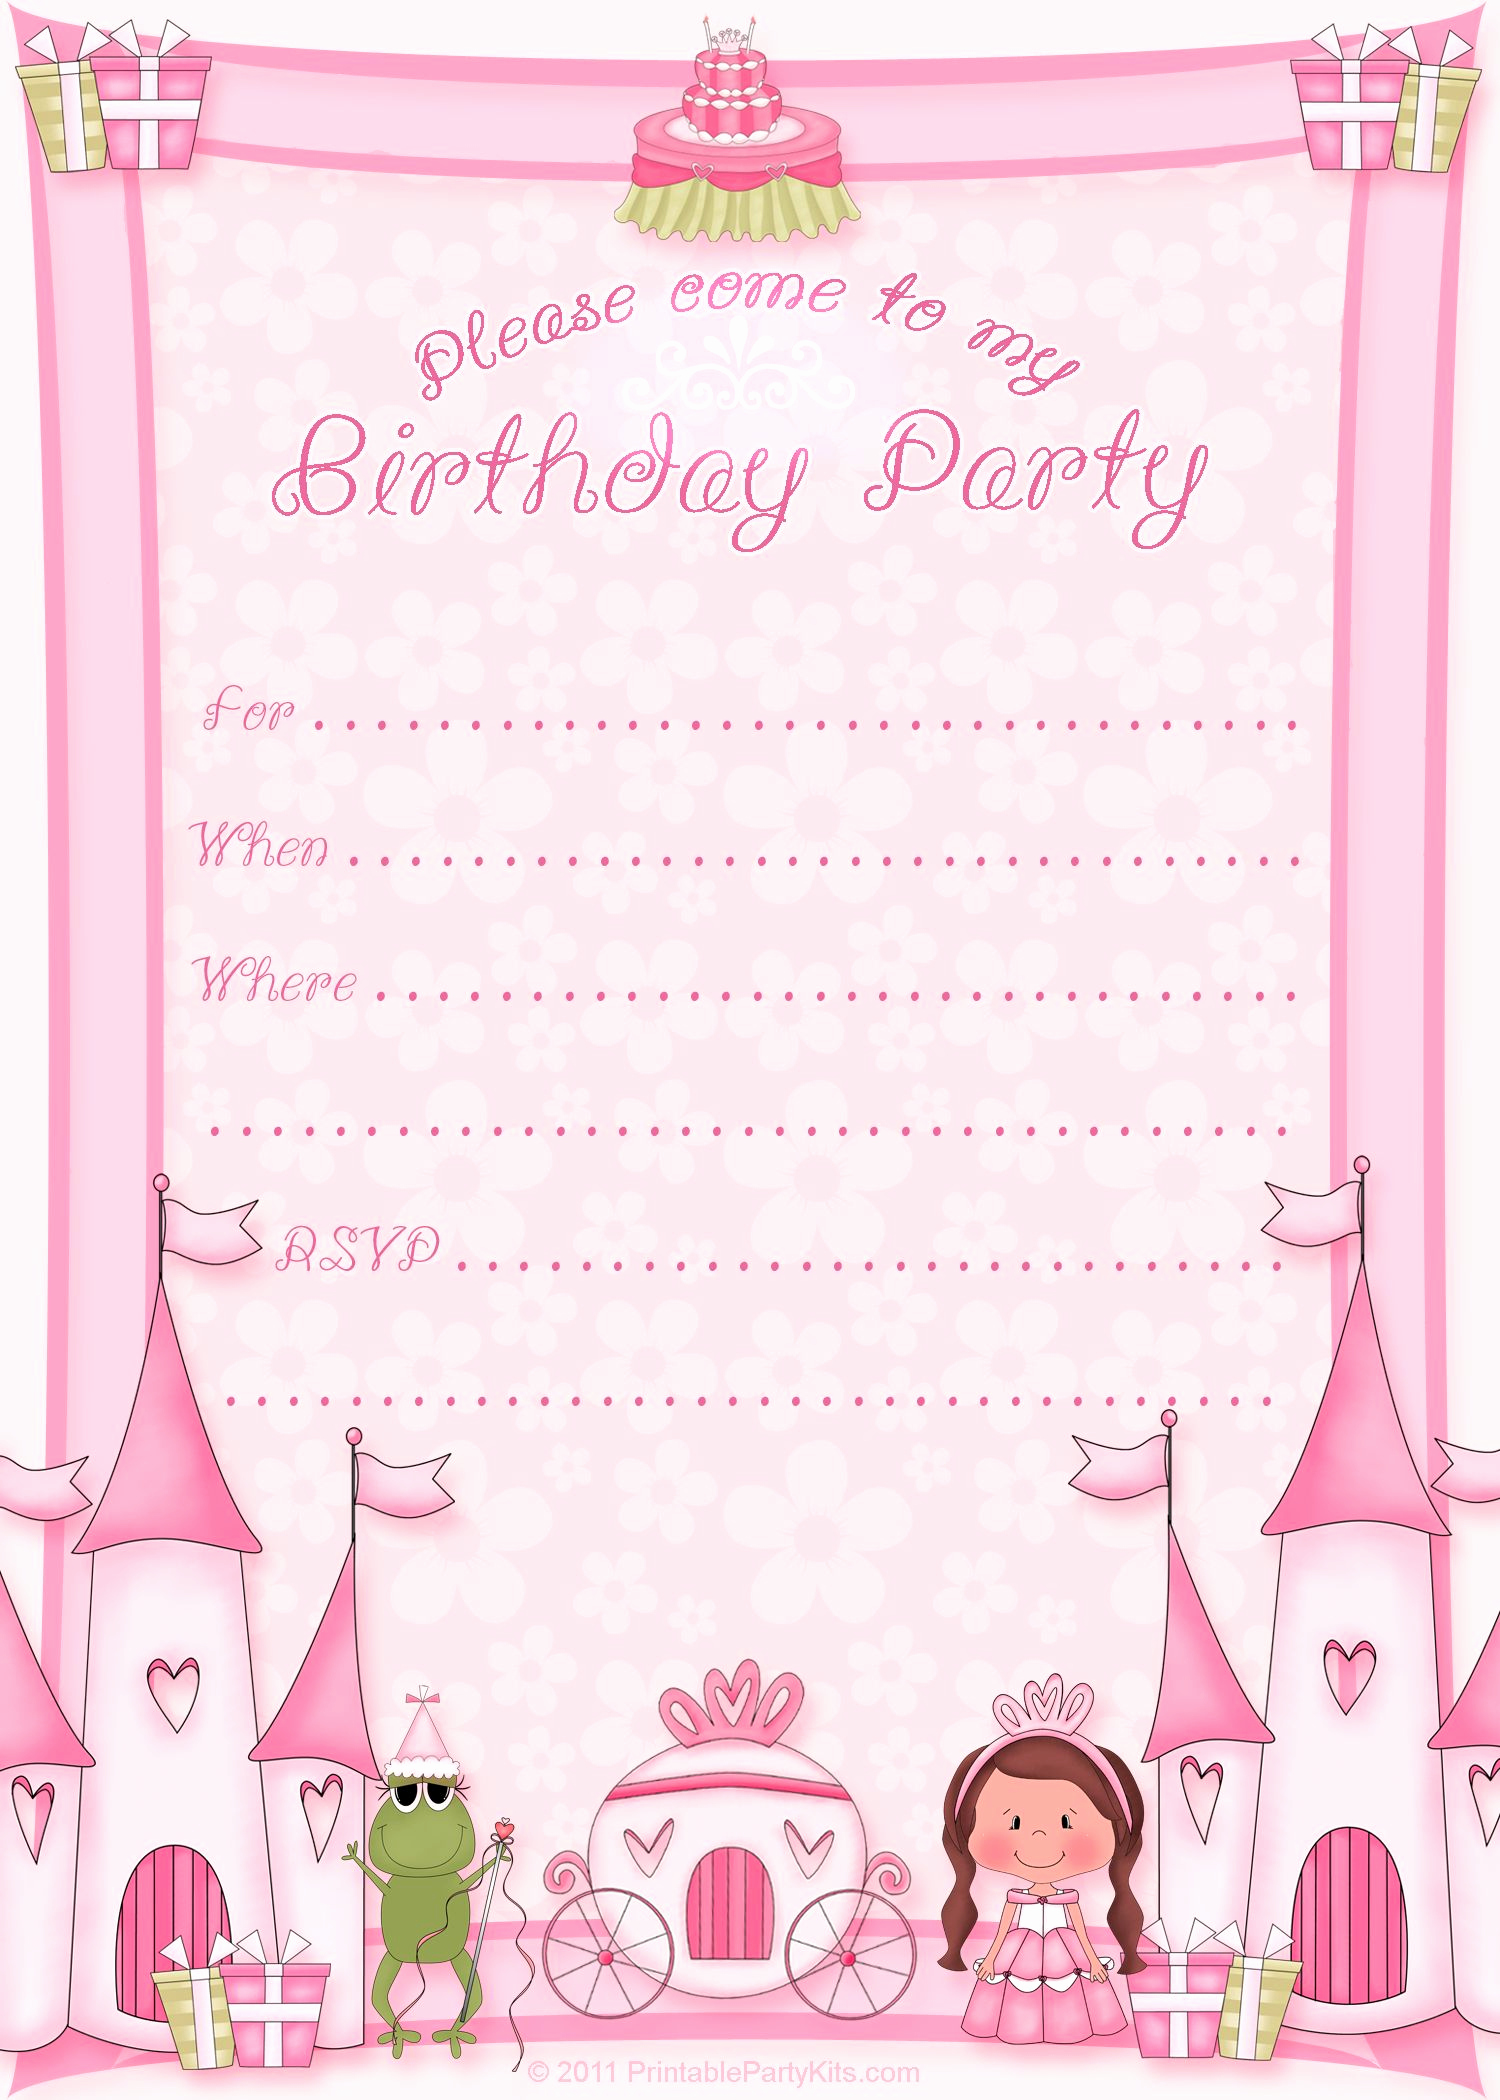 Birthday Party Invitation Templates Best Of Free Printable Invitation Pinned for Kidfolio the